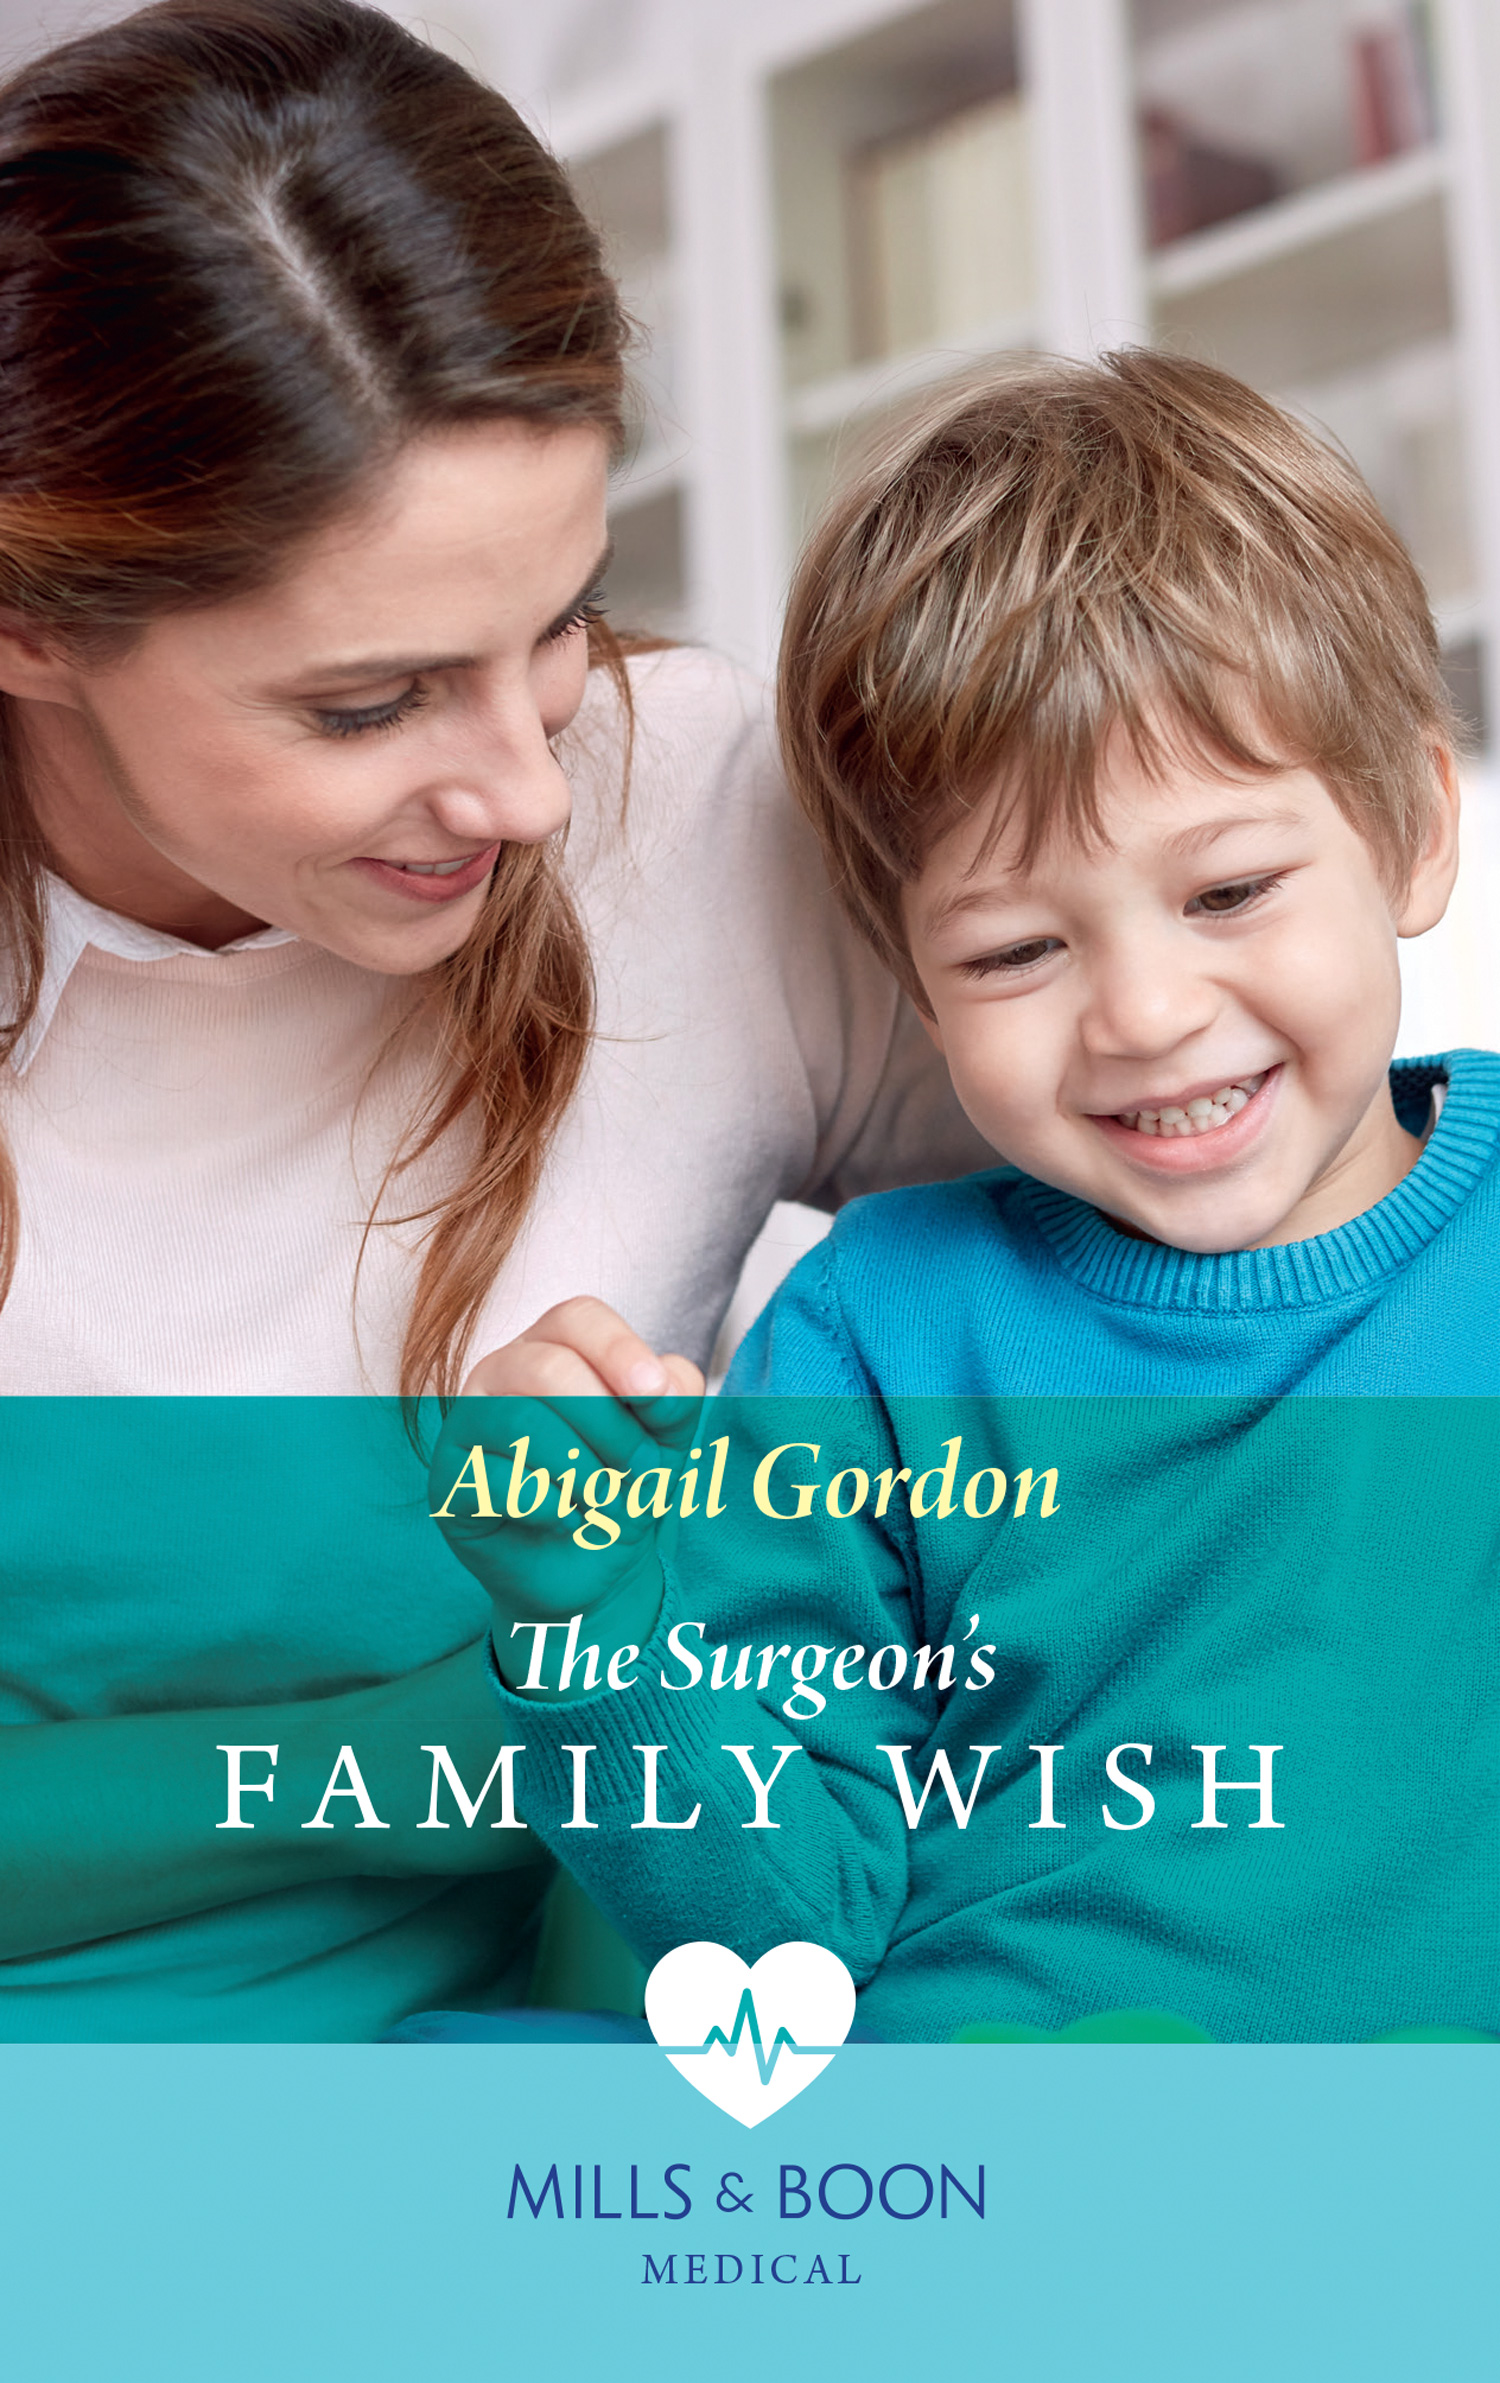 The Surgeon's Family Wish